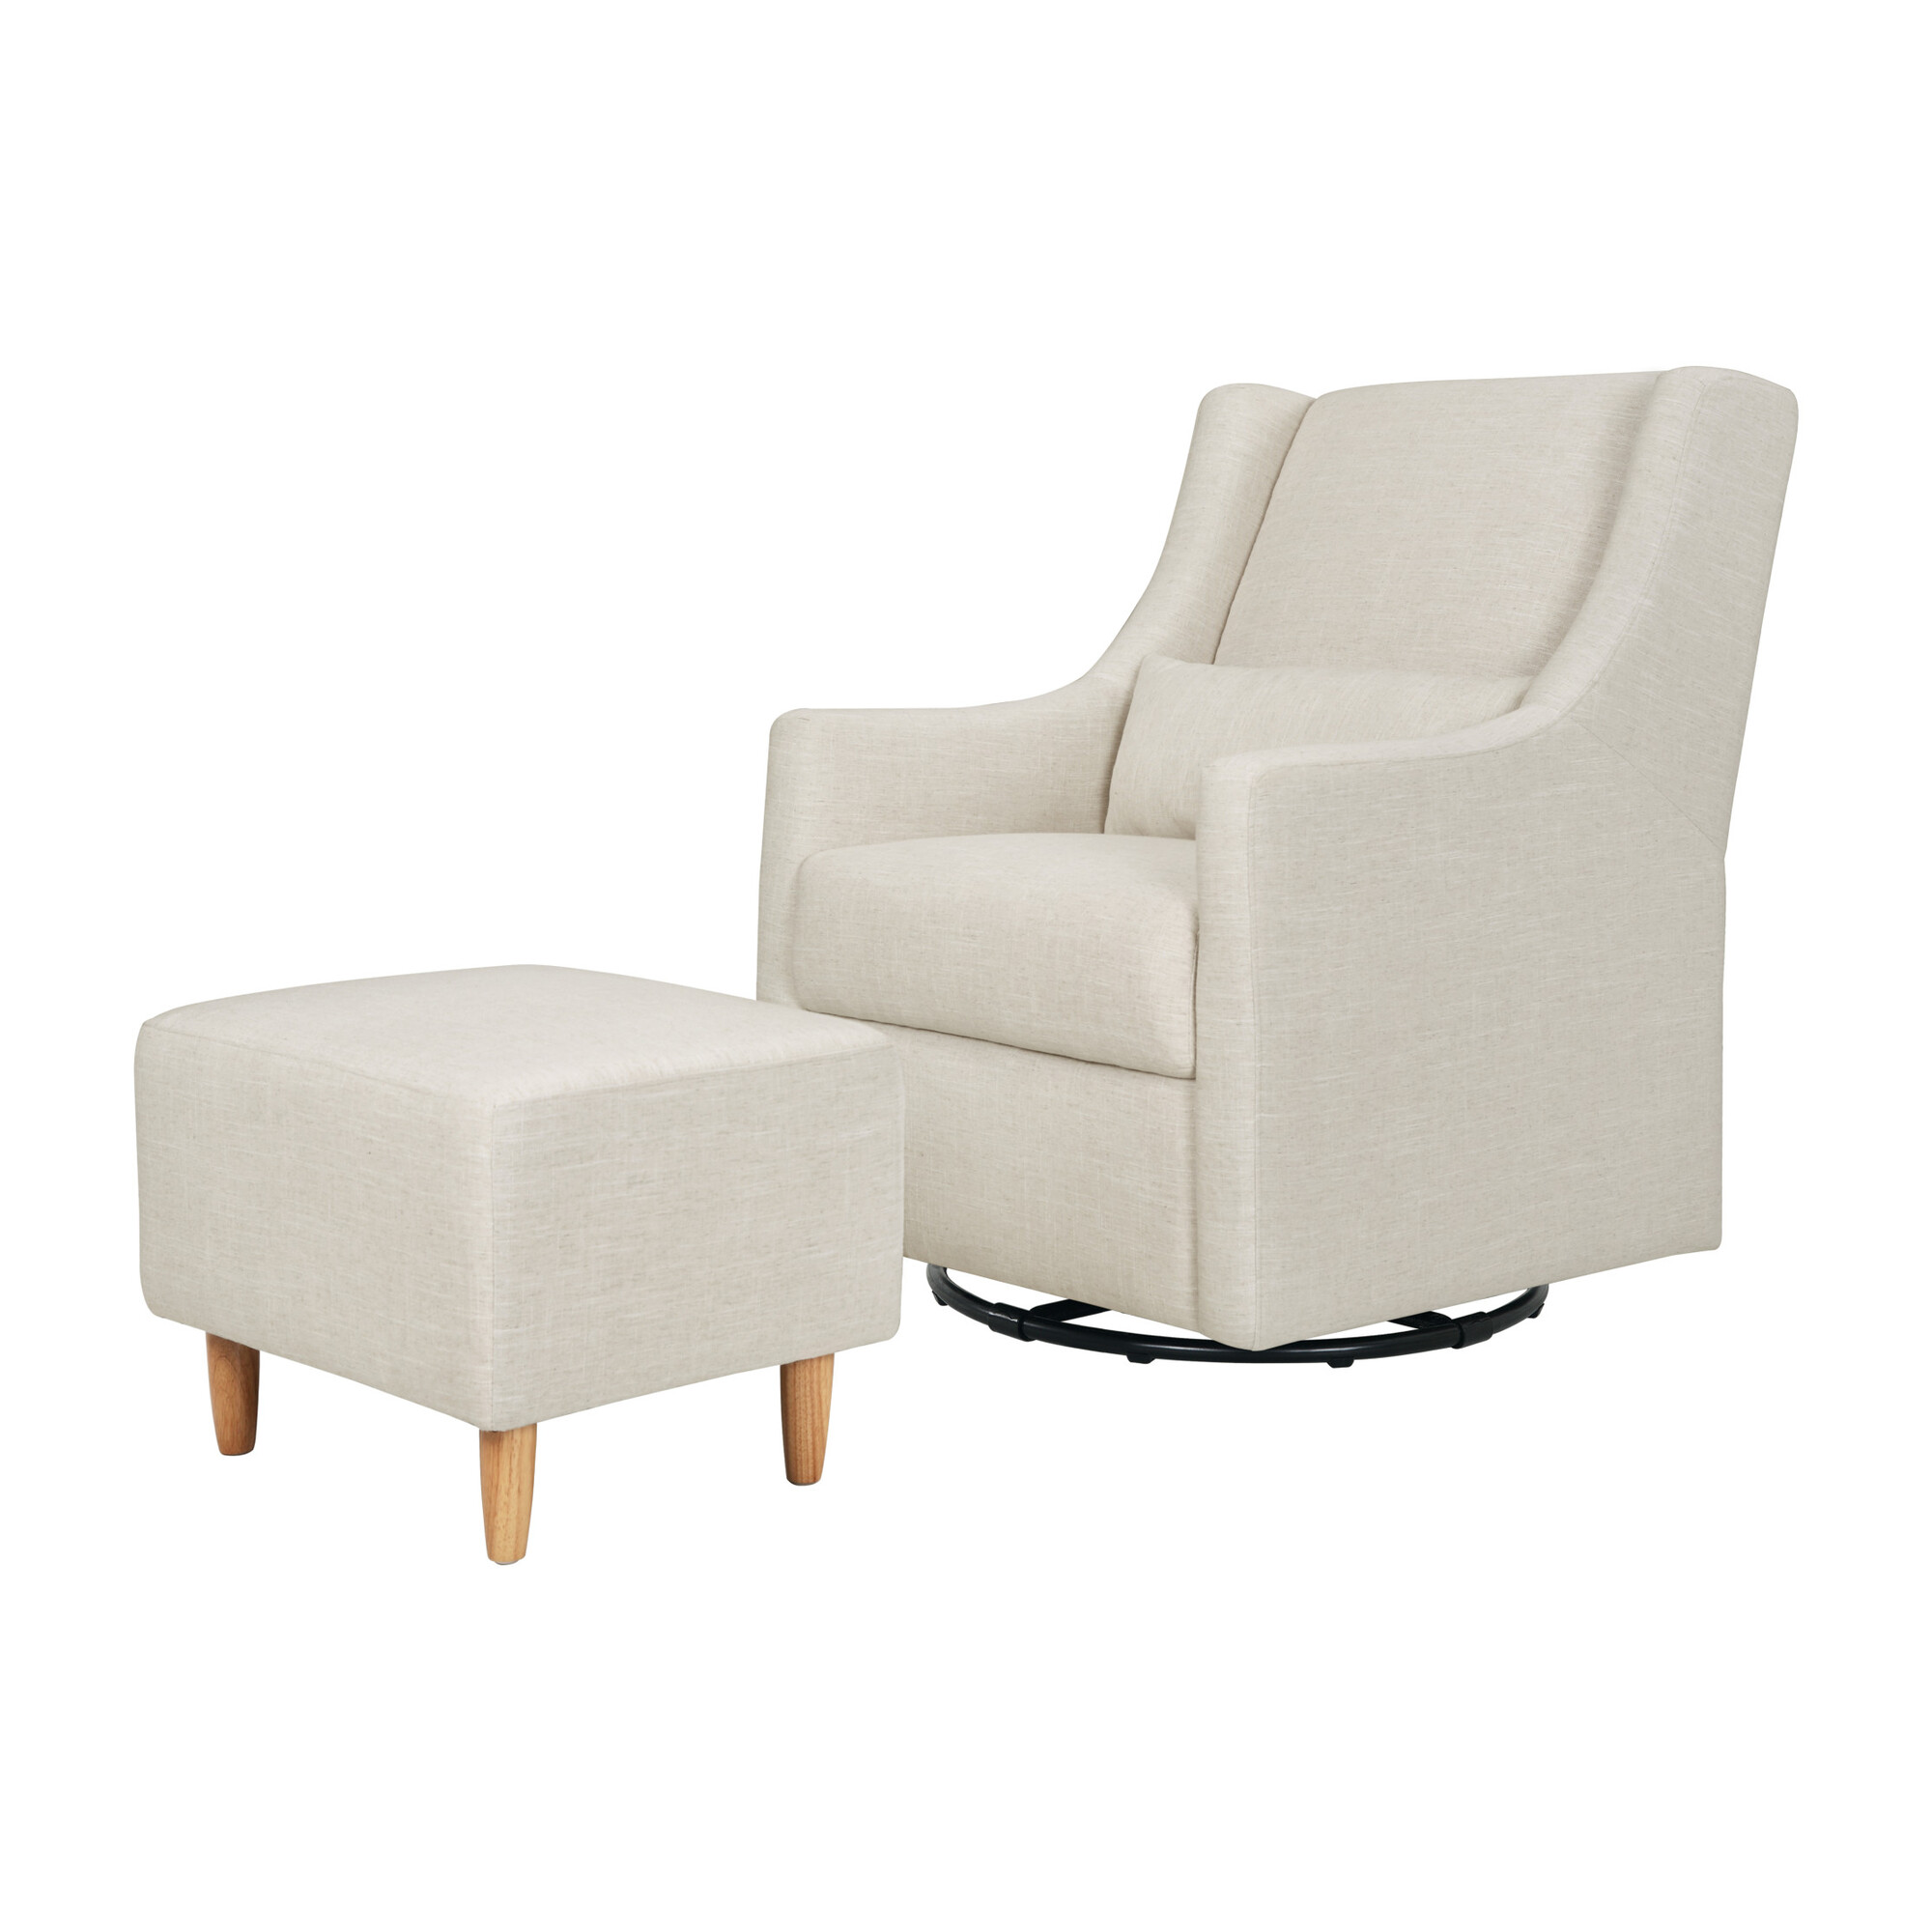 Toco Swivel Glider and Stationary Ottoman, White Linen